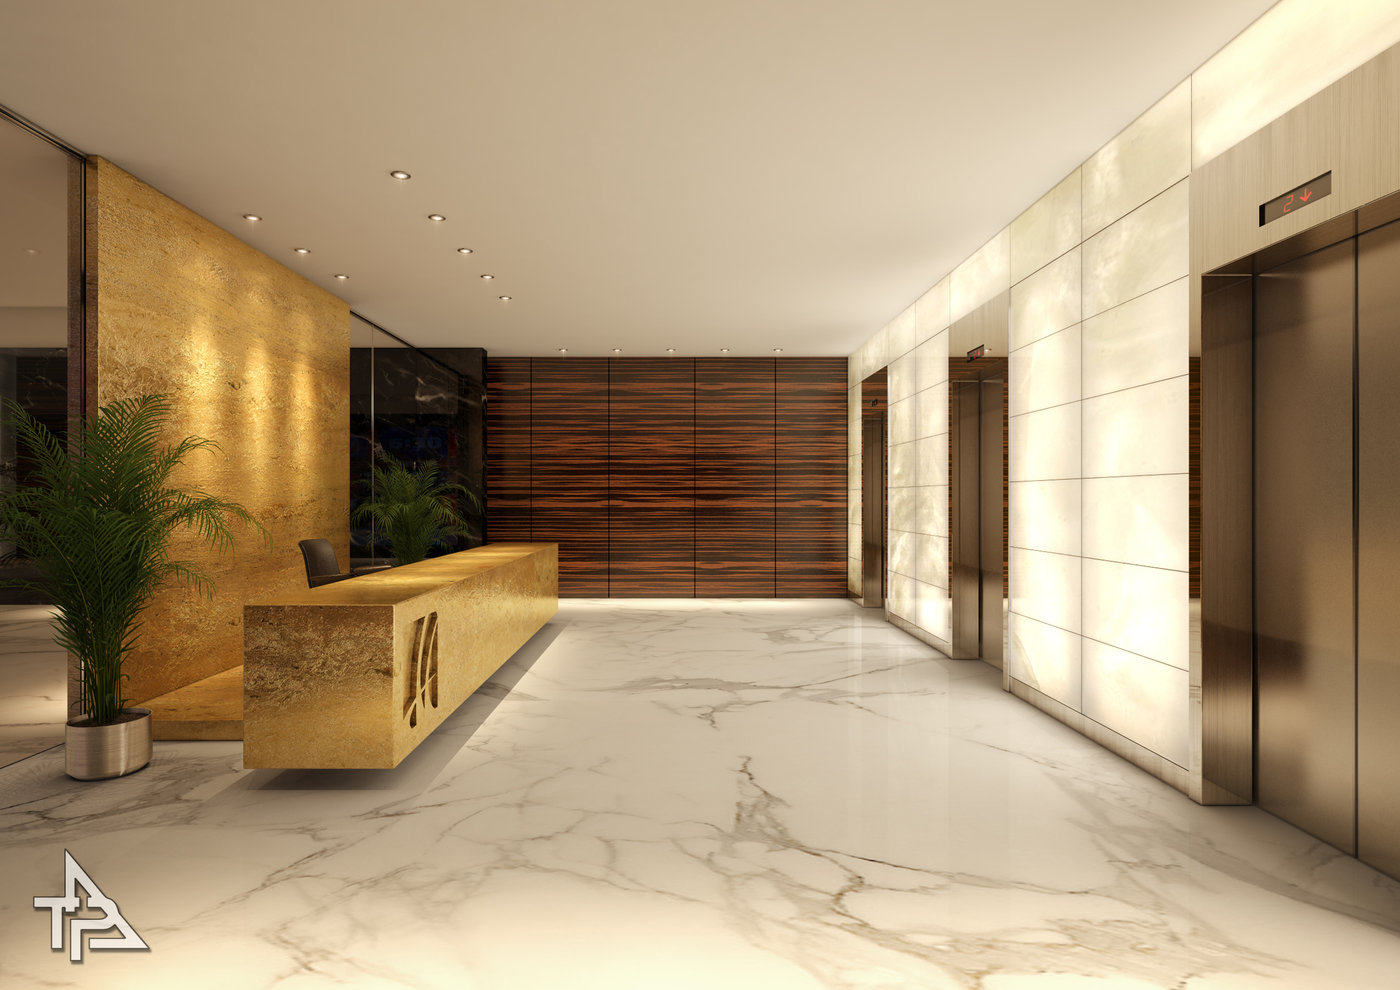 Commercial Interior Design By Malvi Thakur At Coroflot Com